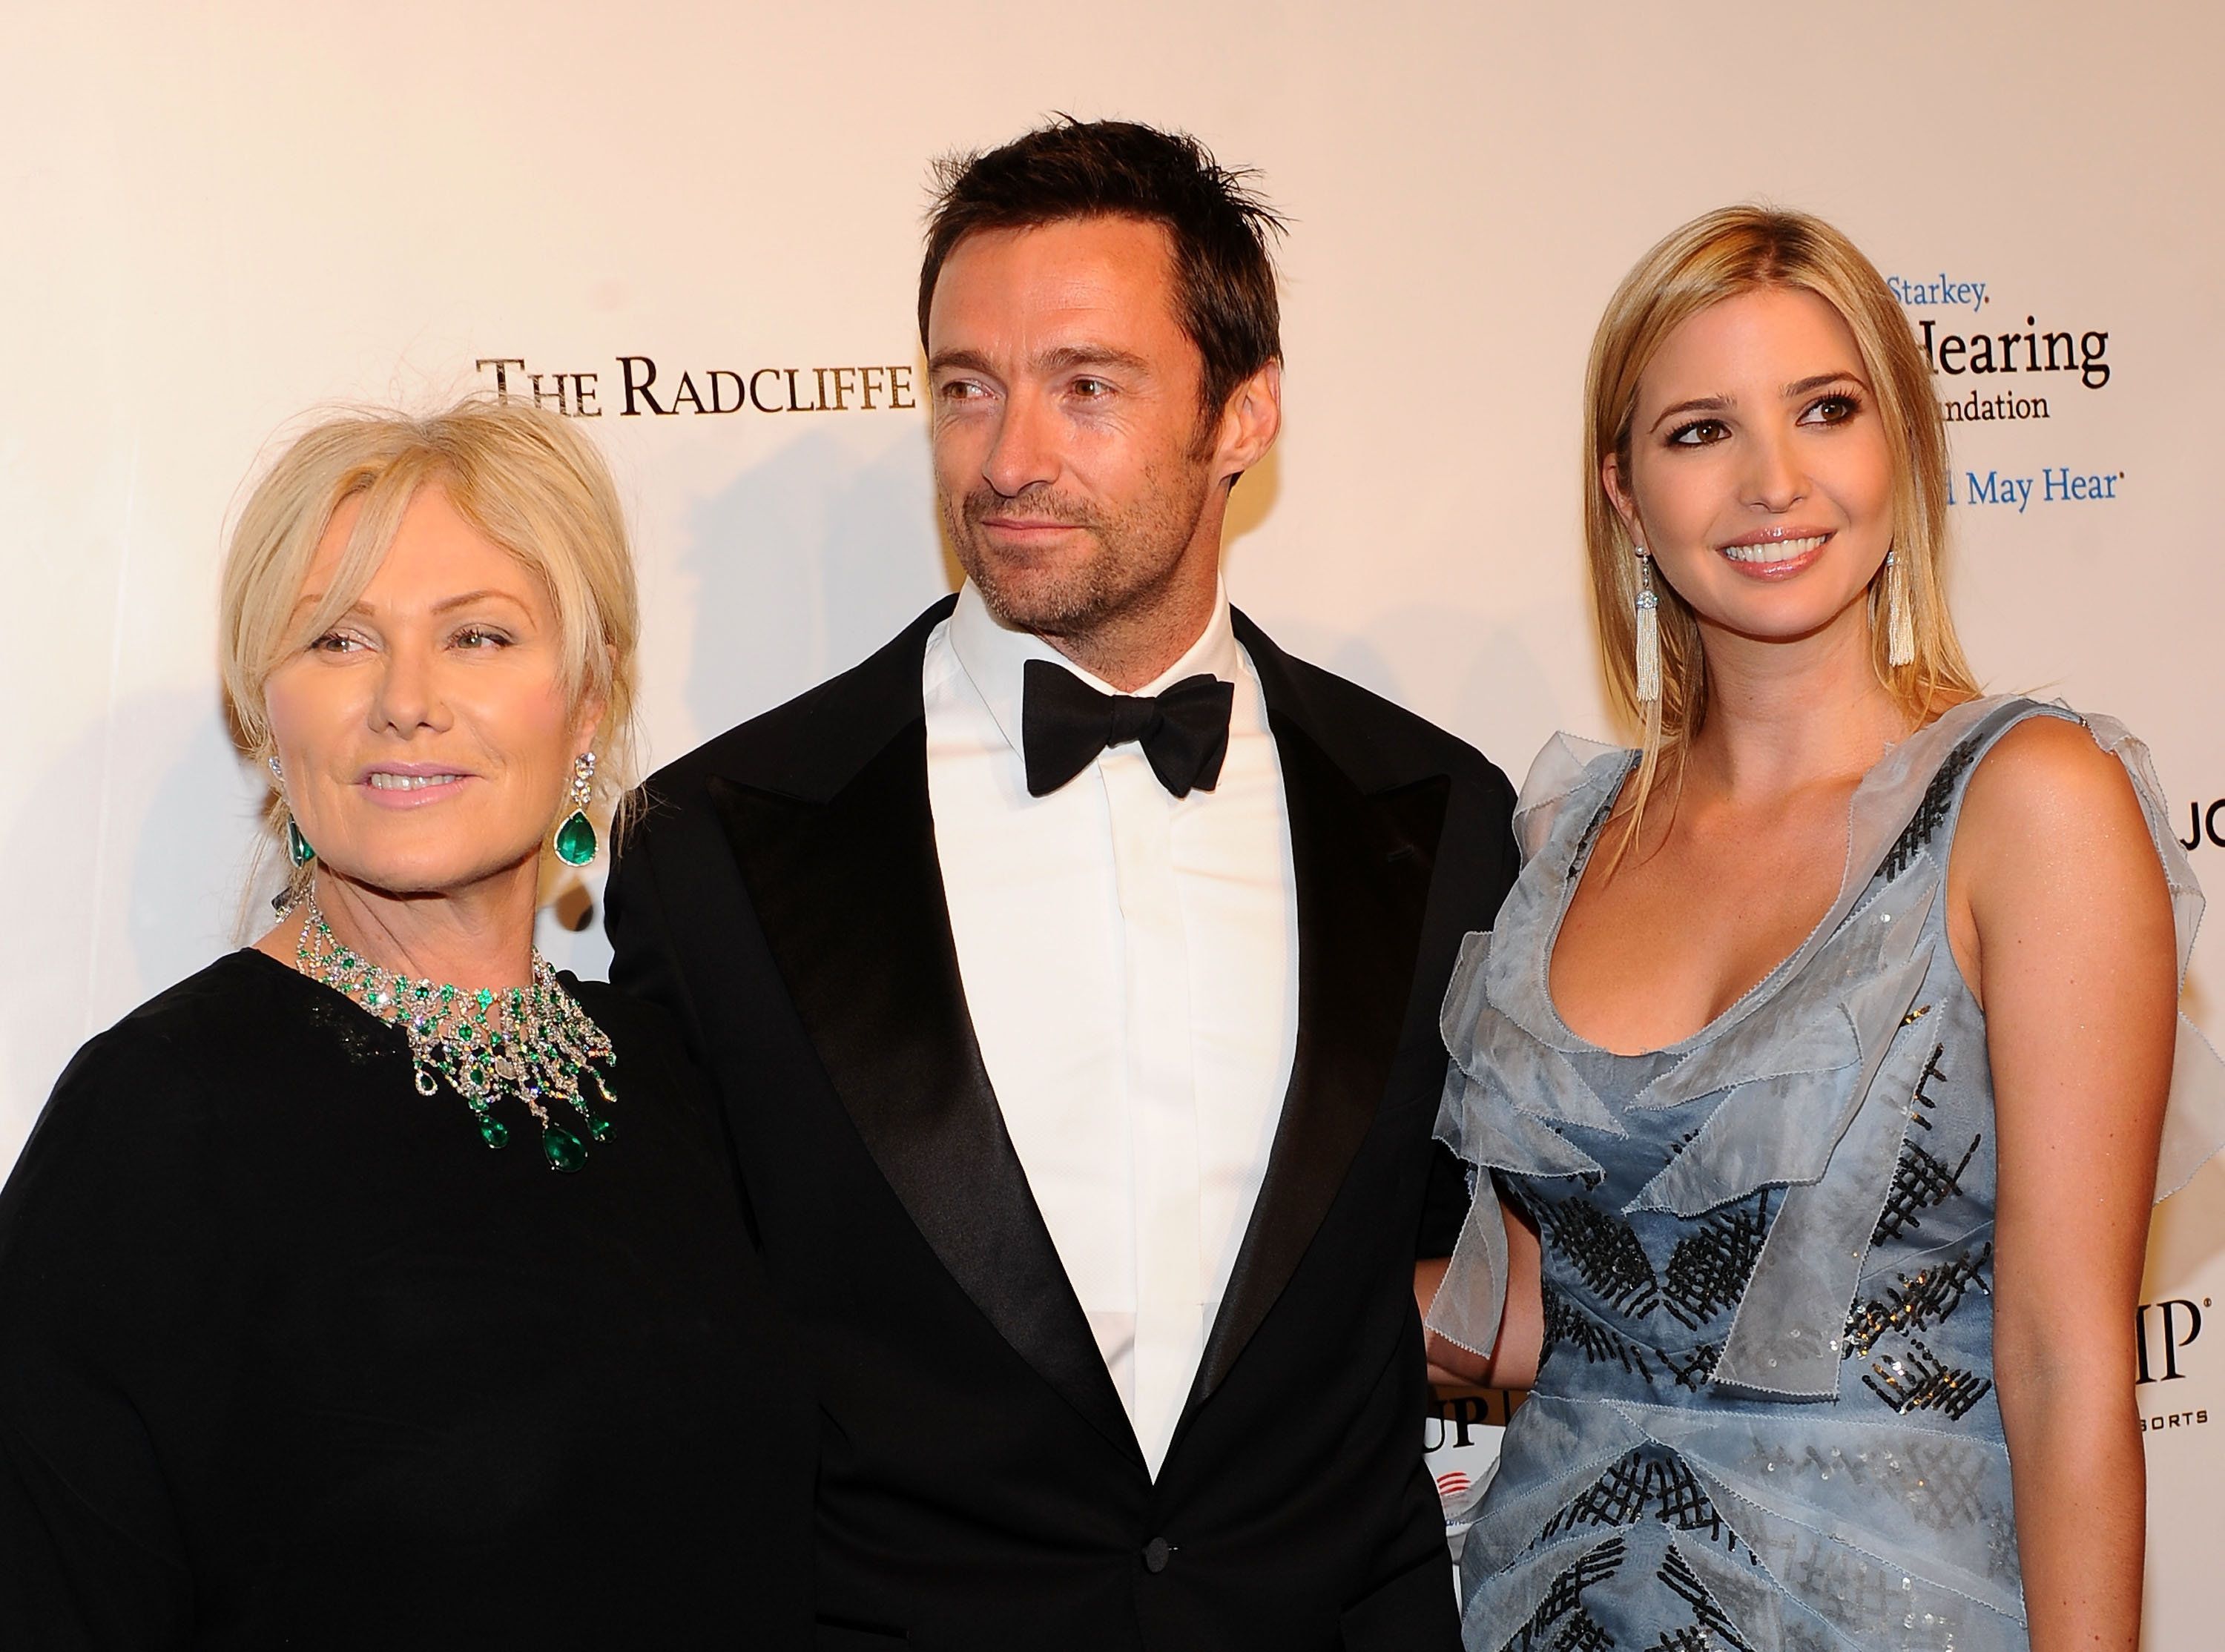 (L-R) Deborra-Lee Furness, Hugh Jackman and Ivanka Trump attend the 9th Annual Elton John AIDS Foundation's 'An Enduring Vision' benefit at Cipriani, Wall Street on October 18, 2010 in New York City. (Photo by Jamie McCarthy/WireImage)